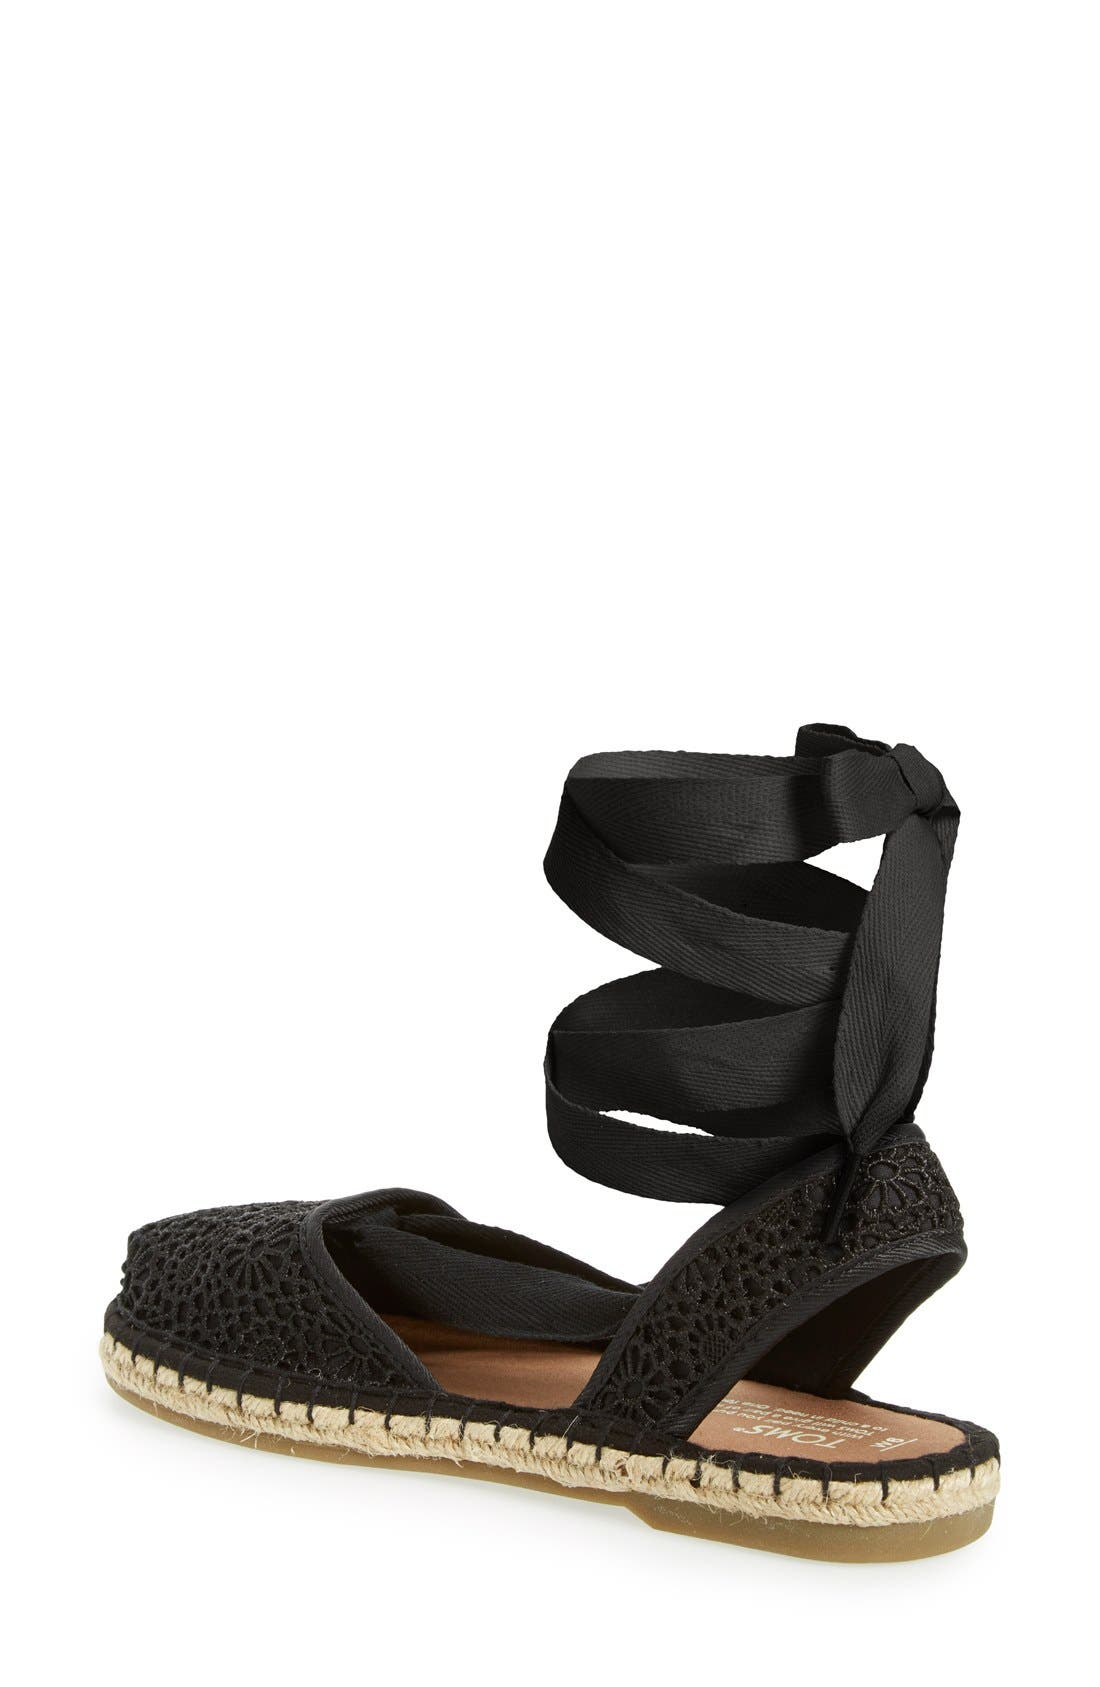 'Bella' Espadrille Sandal,                             Alternate thumbnail 3, color,                             001